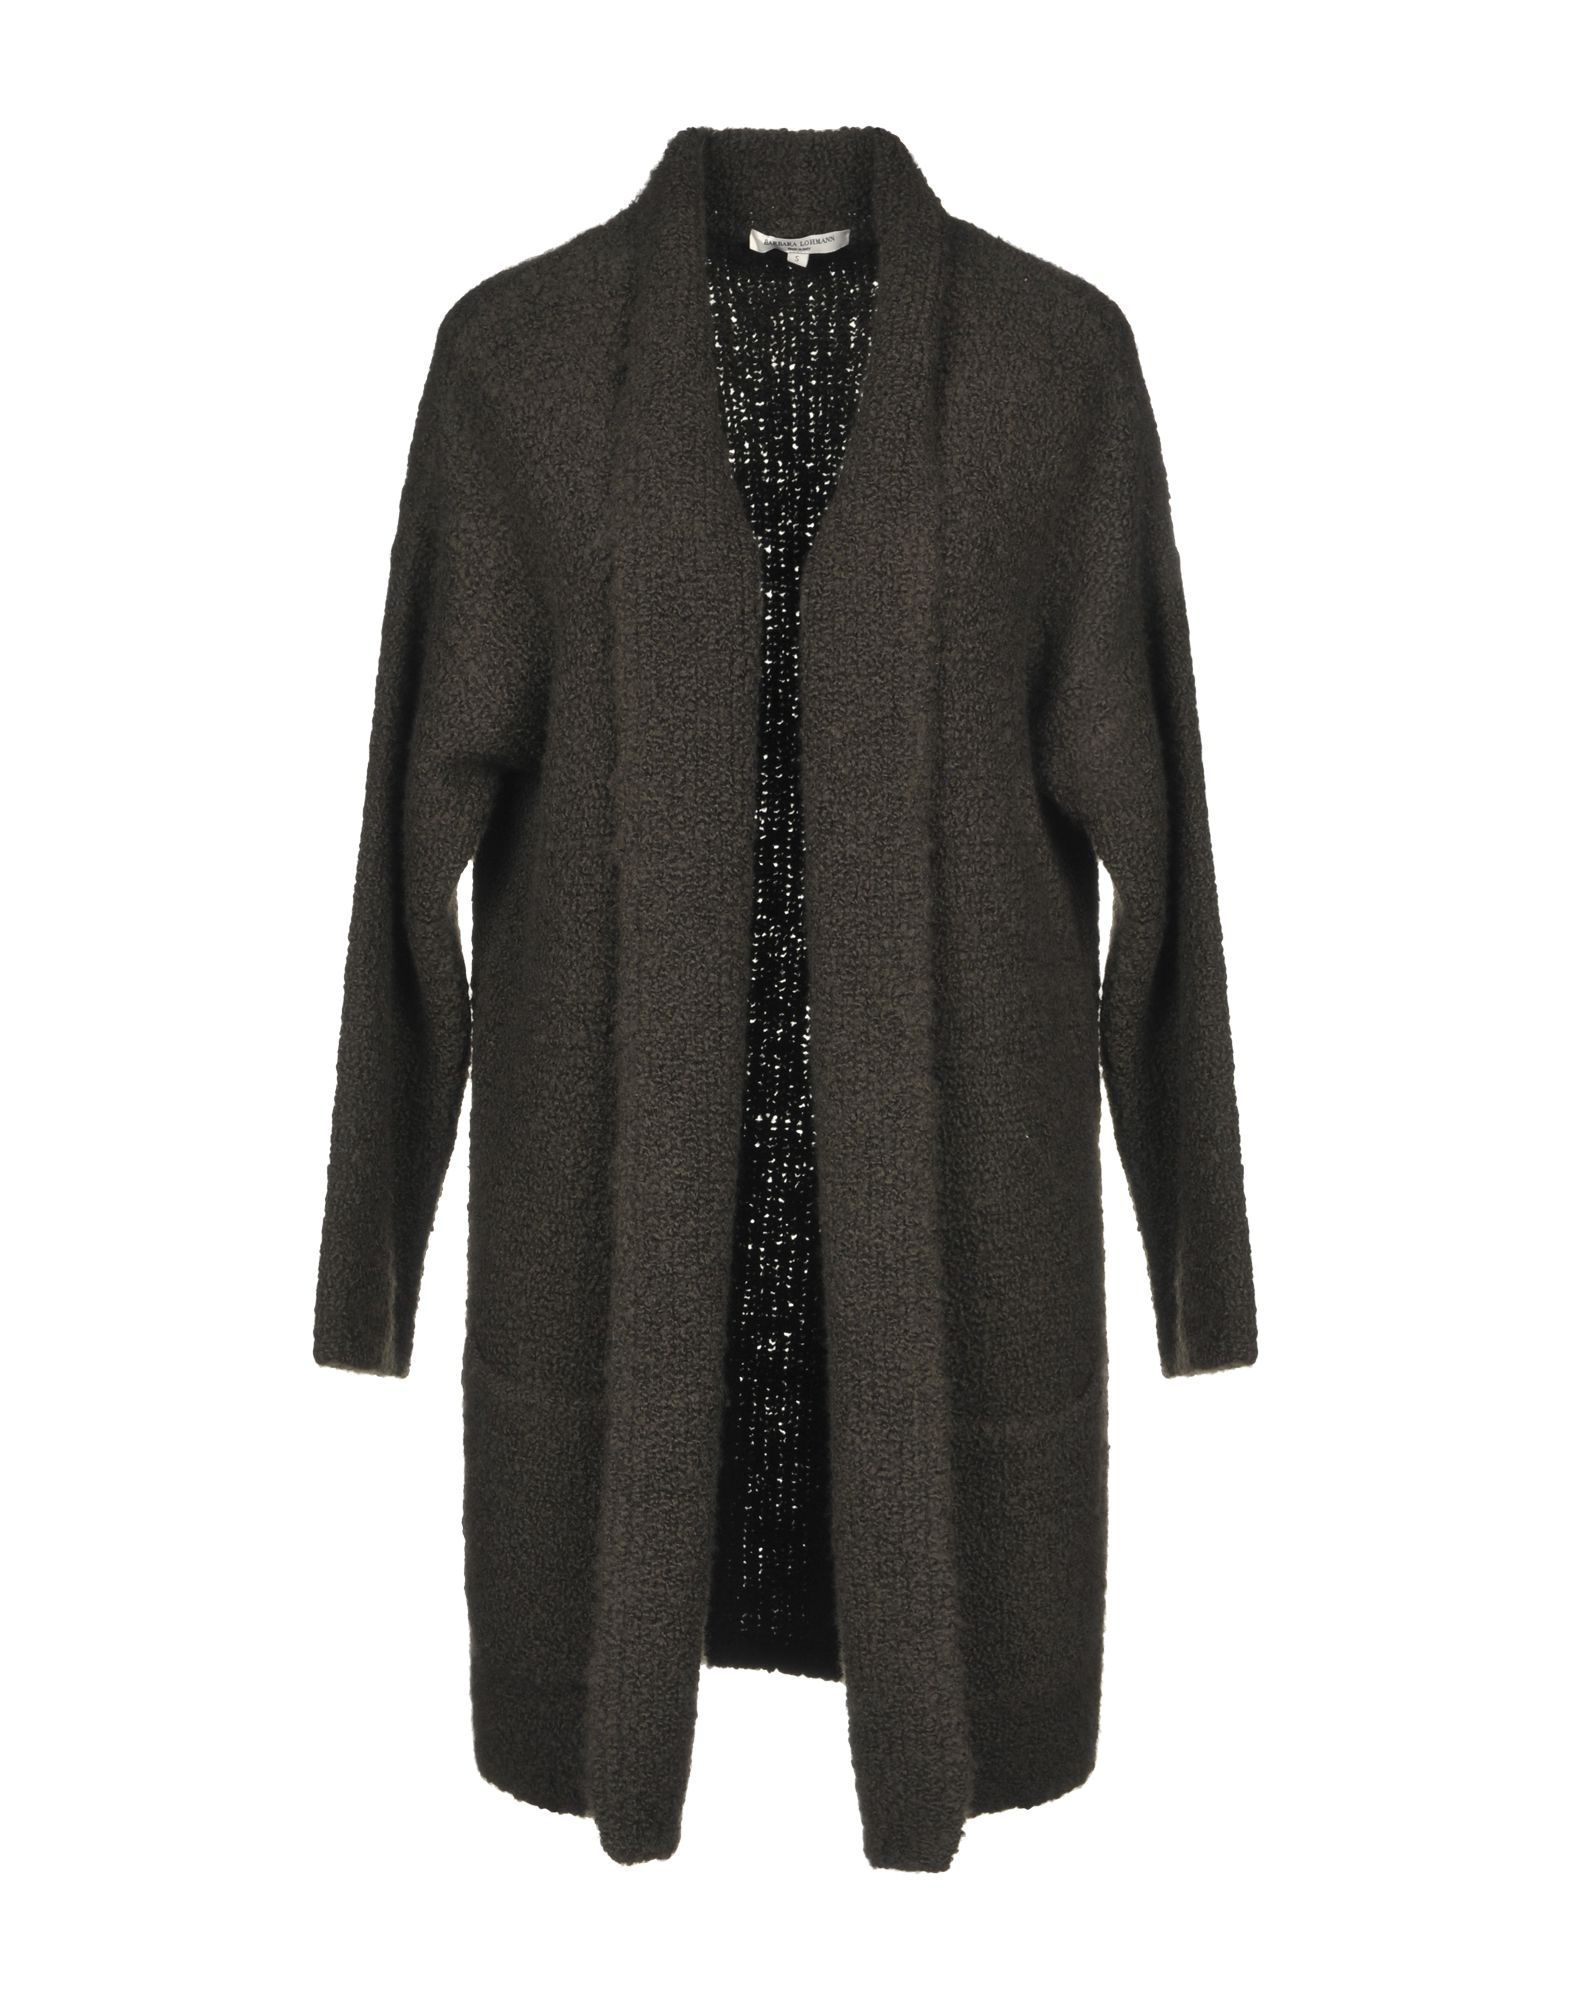 BARBARA LOHMANN Cardigan in Dark Green